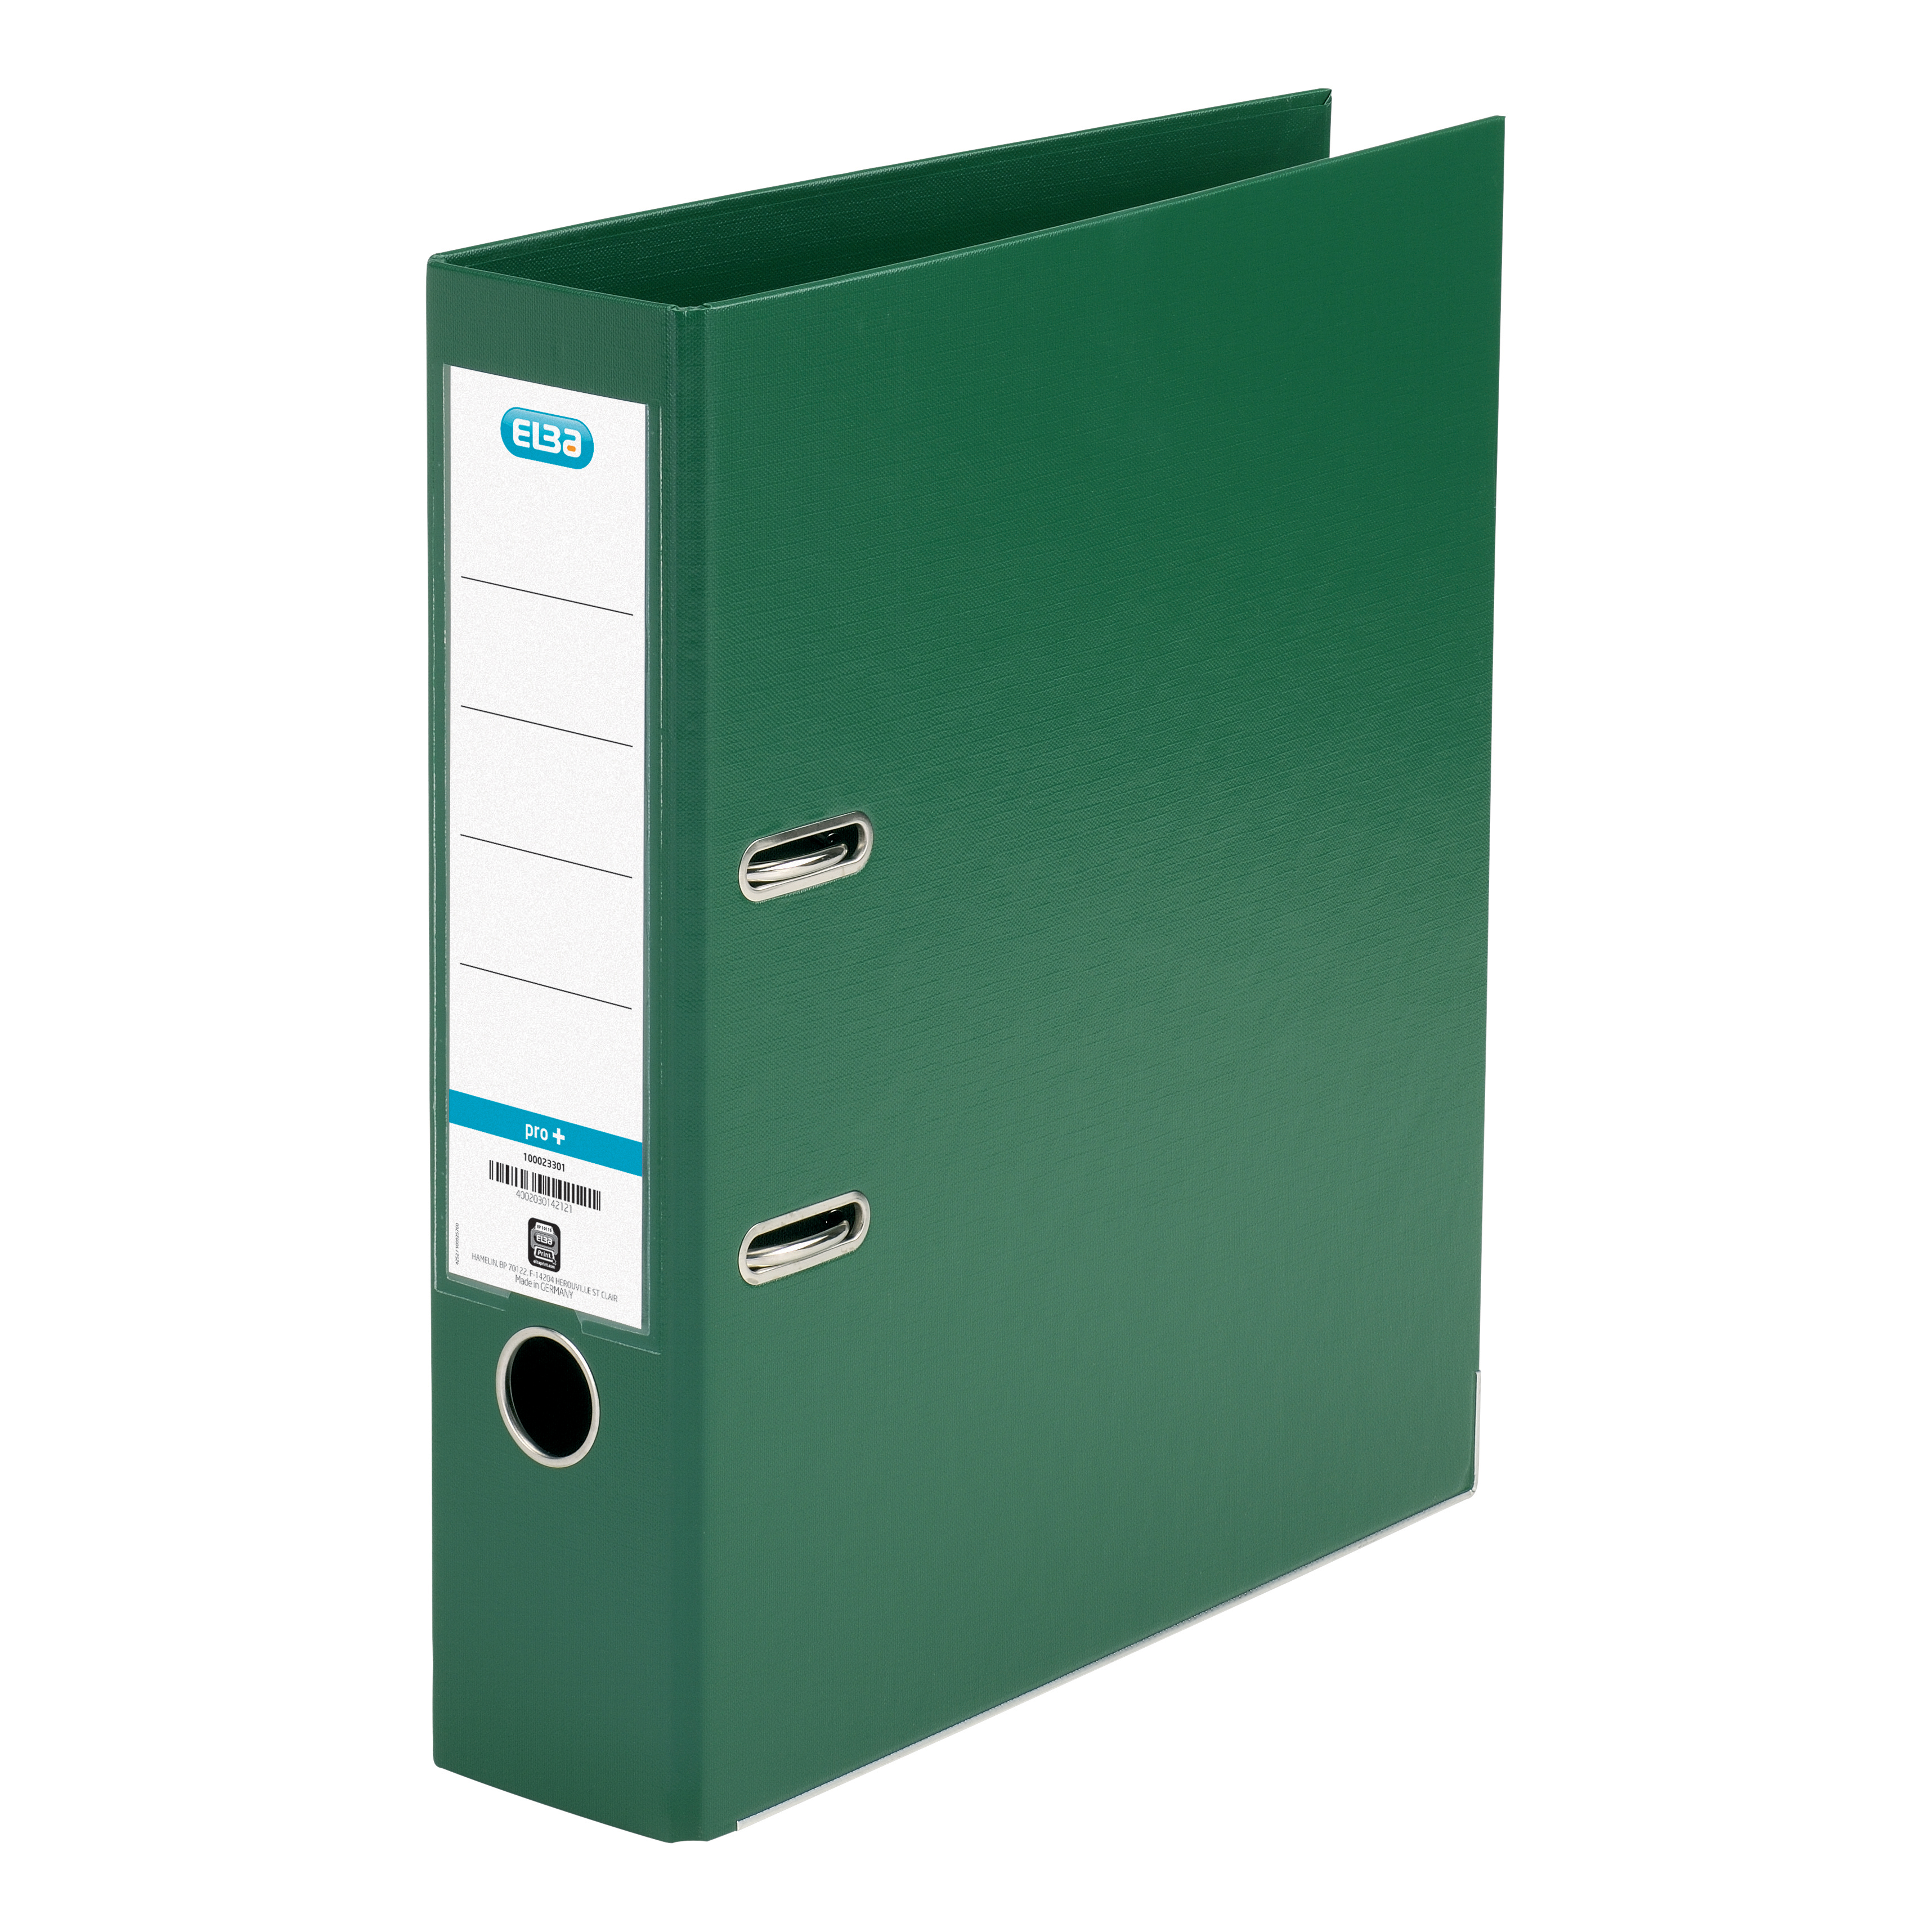 Elba Lever Arch File Polypropylene 70mm Spine A4 Green Ref 100202174 Pack 10